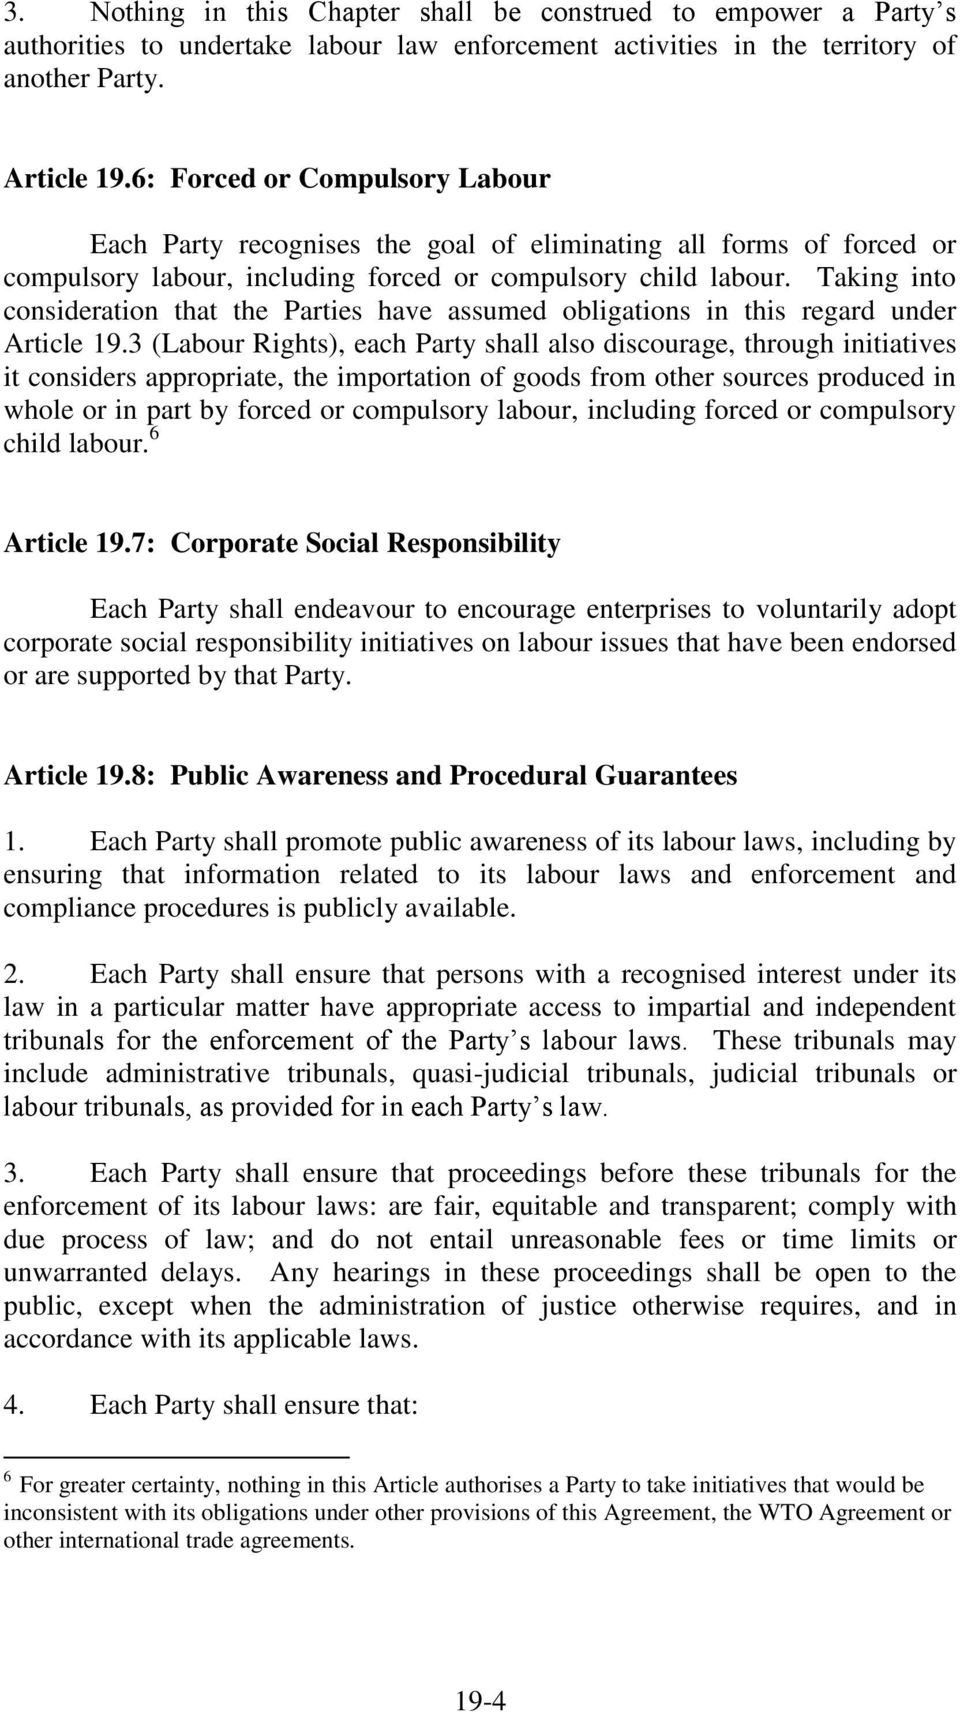 Taking into consideration that the Parties have assumed obligations in this regard under Article 19.